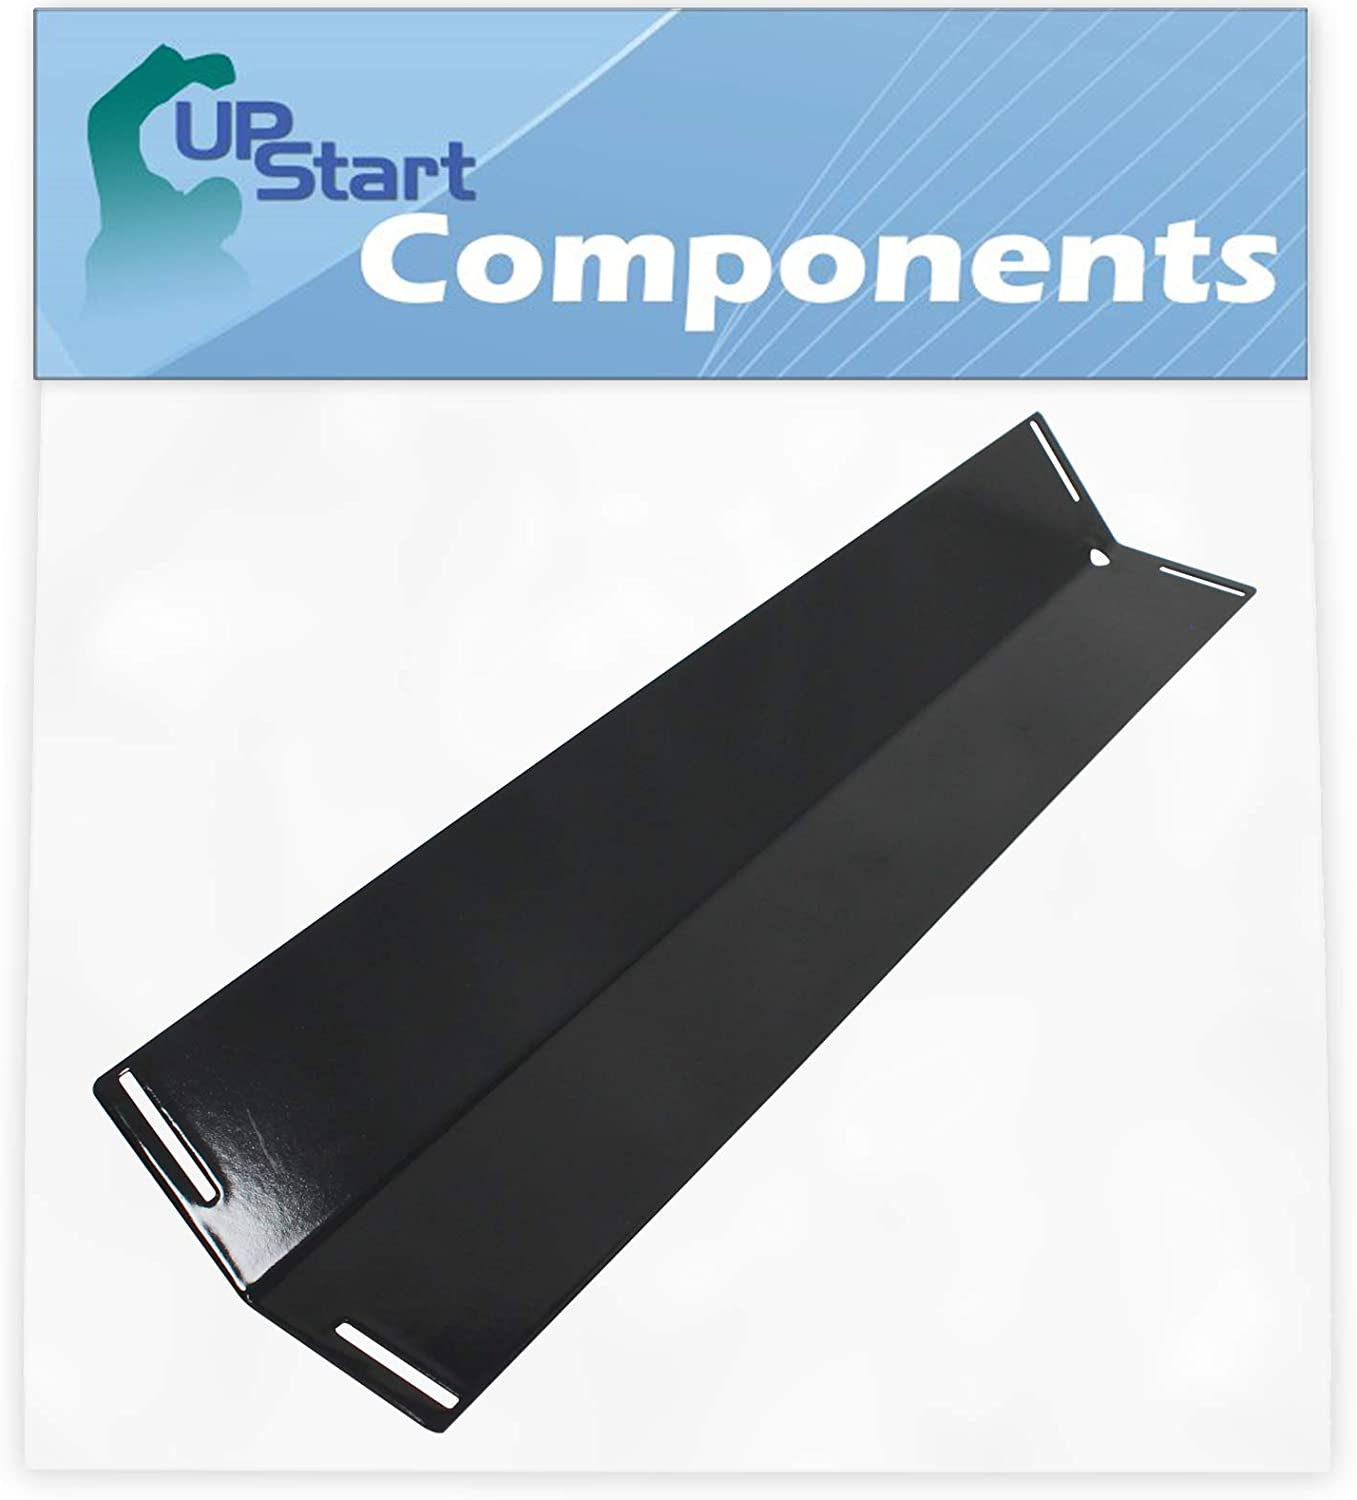 BBQ Grill Heat Shield Plate Sale Max 56% OFF Special Price Tent Parts Replacement Charbroil for